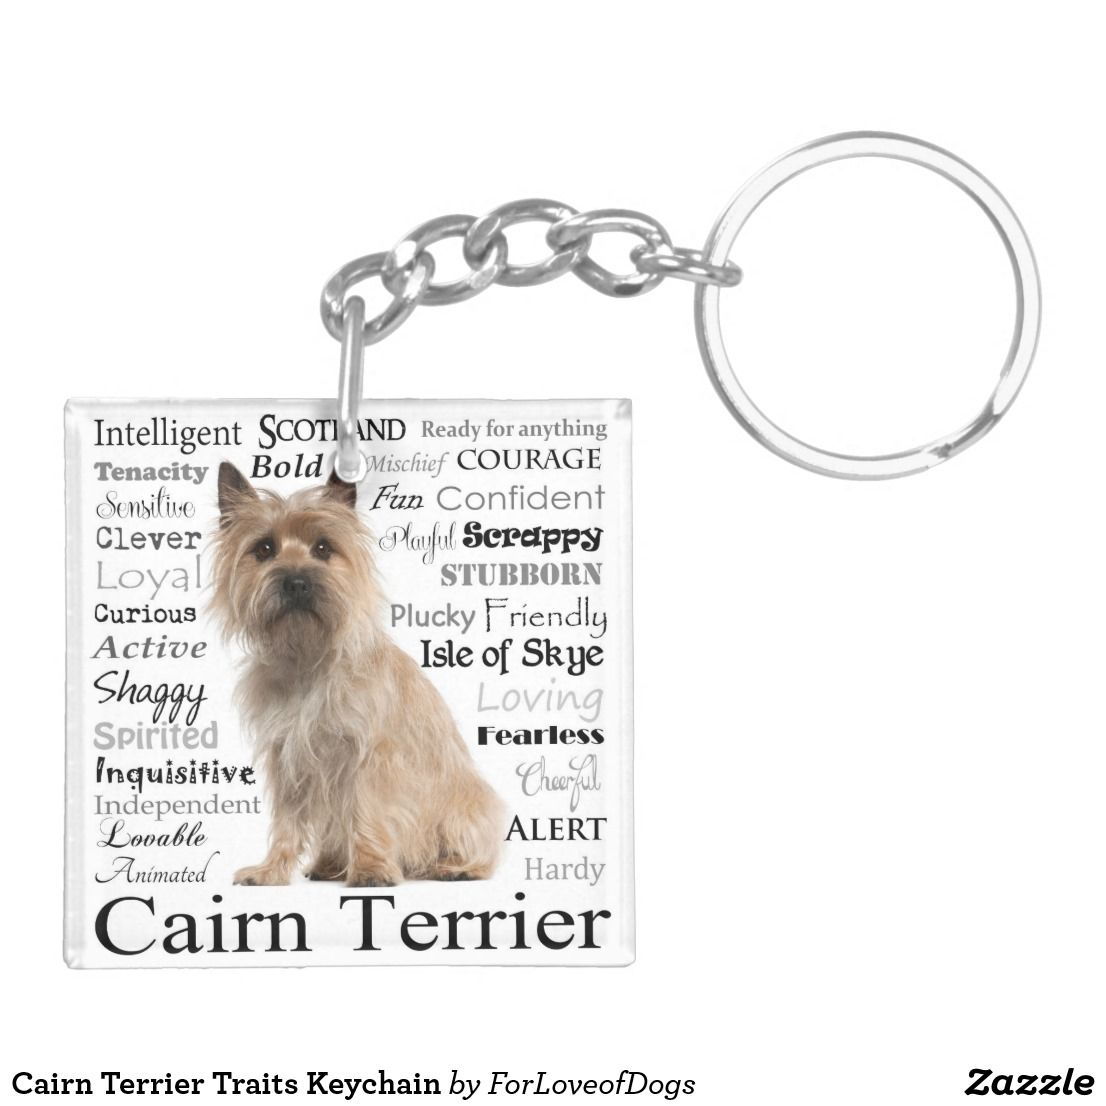 Cairn Terrier Traits Keychain Zazzle Com Cairn Terrier